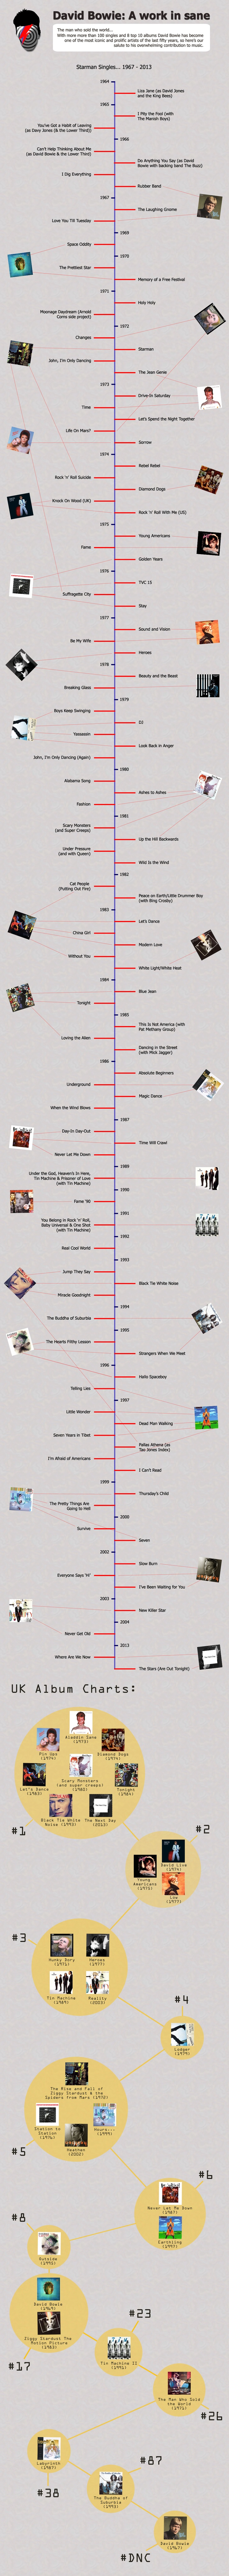 Our David Bowie singles chronology and album charts infographic. For the embed code, visit http://tuppencemagazine.co.uk/entertainment-news/david-bowie-singles-chronology-album-chart-infographic/